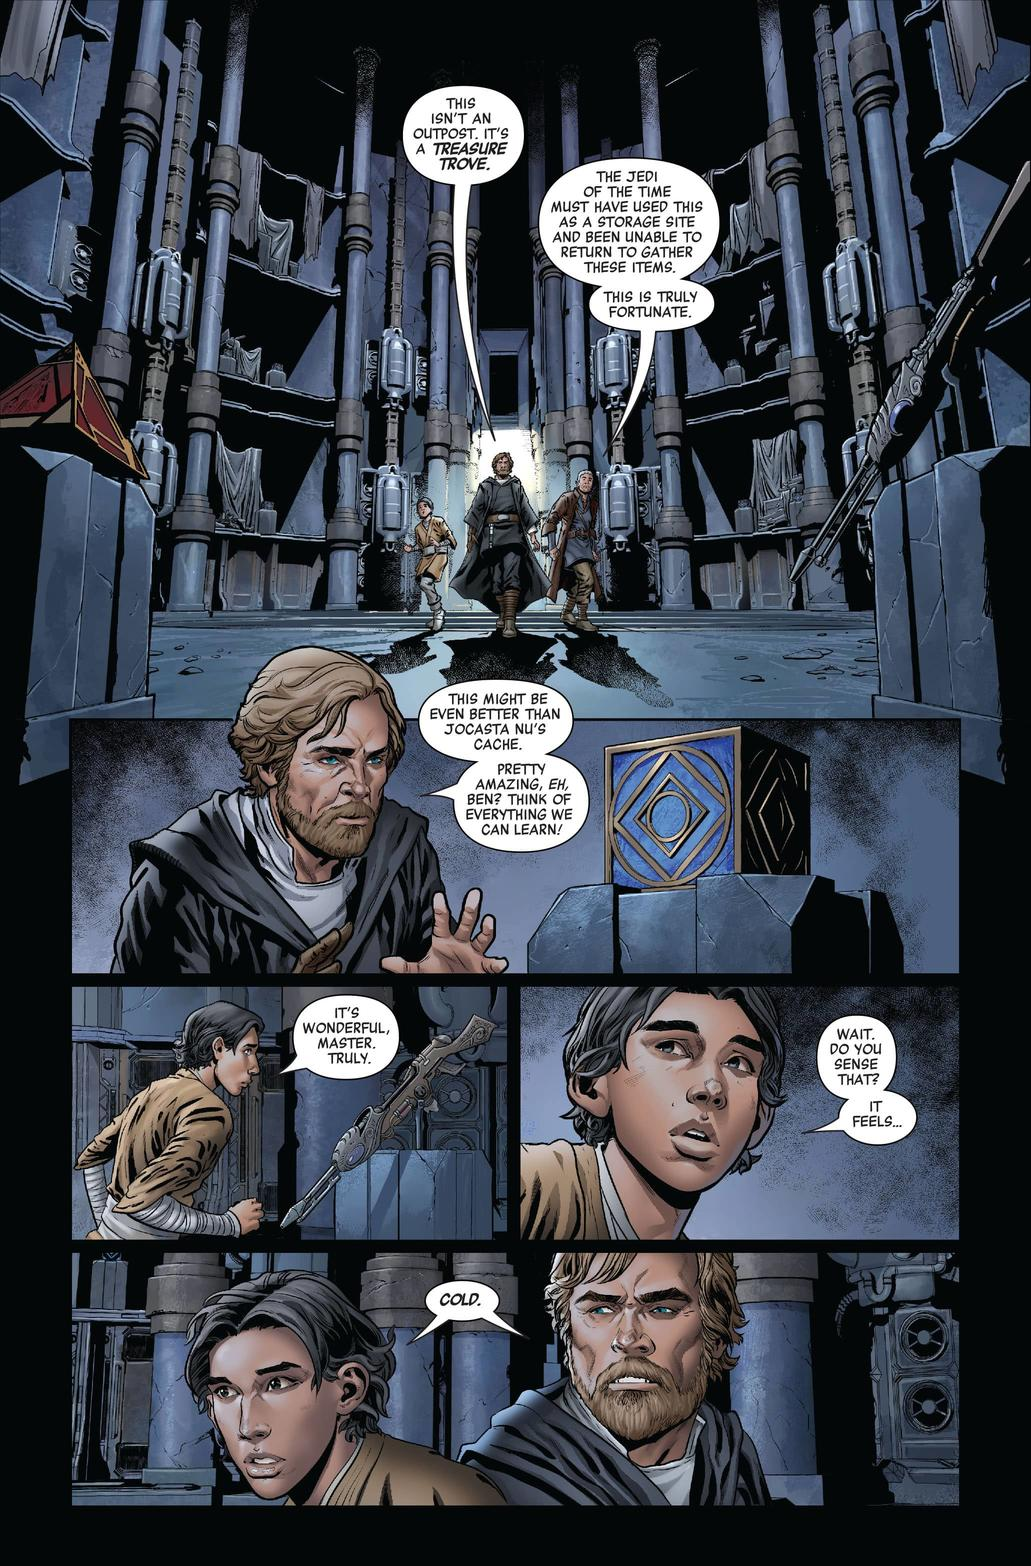 STAR WARS: THE RISE OF KYLO REN #2 art by Will Sliney with colors by Guru-eFX